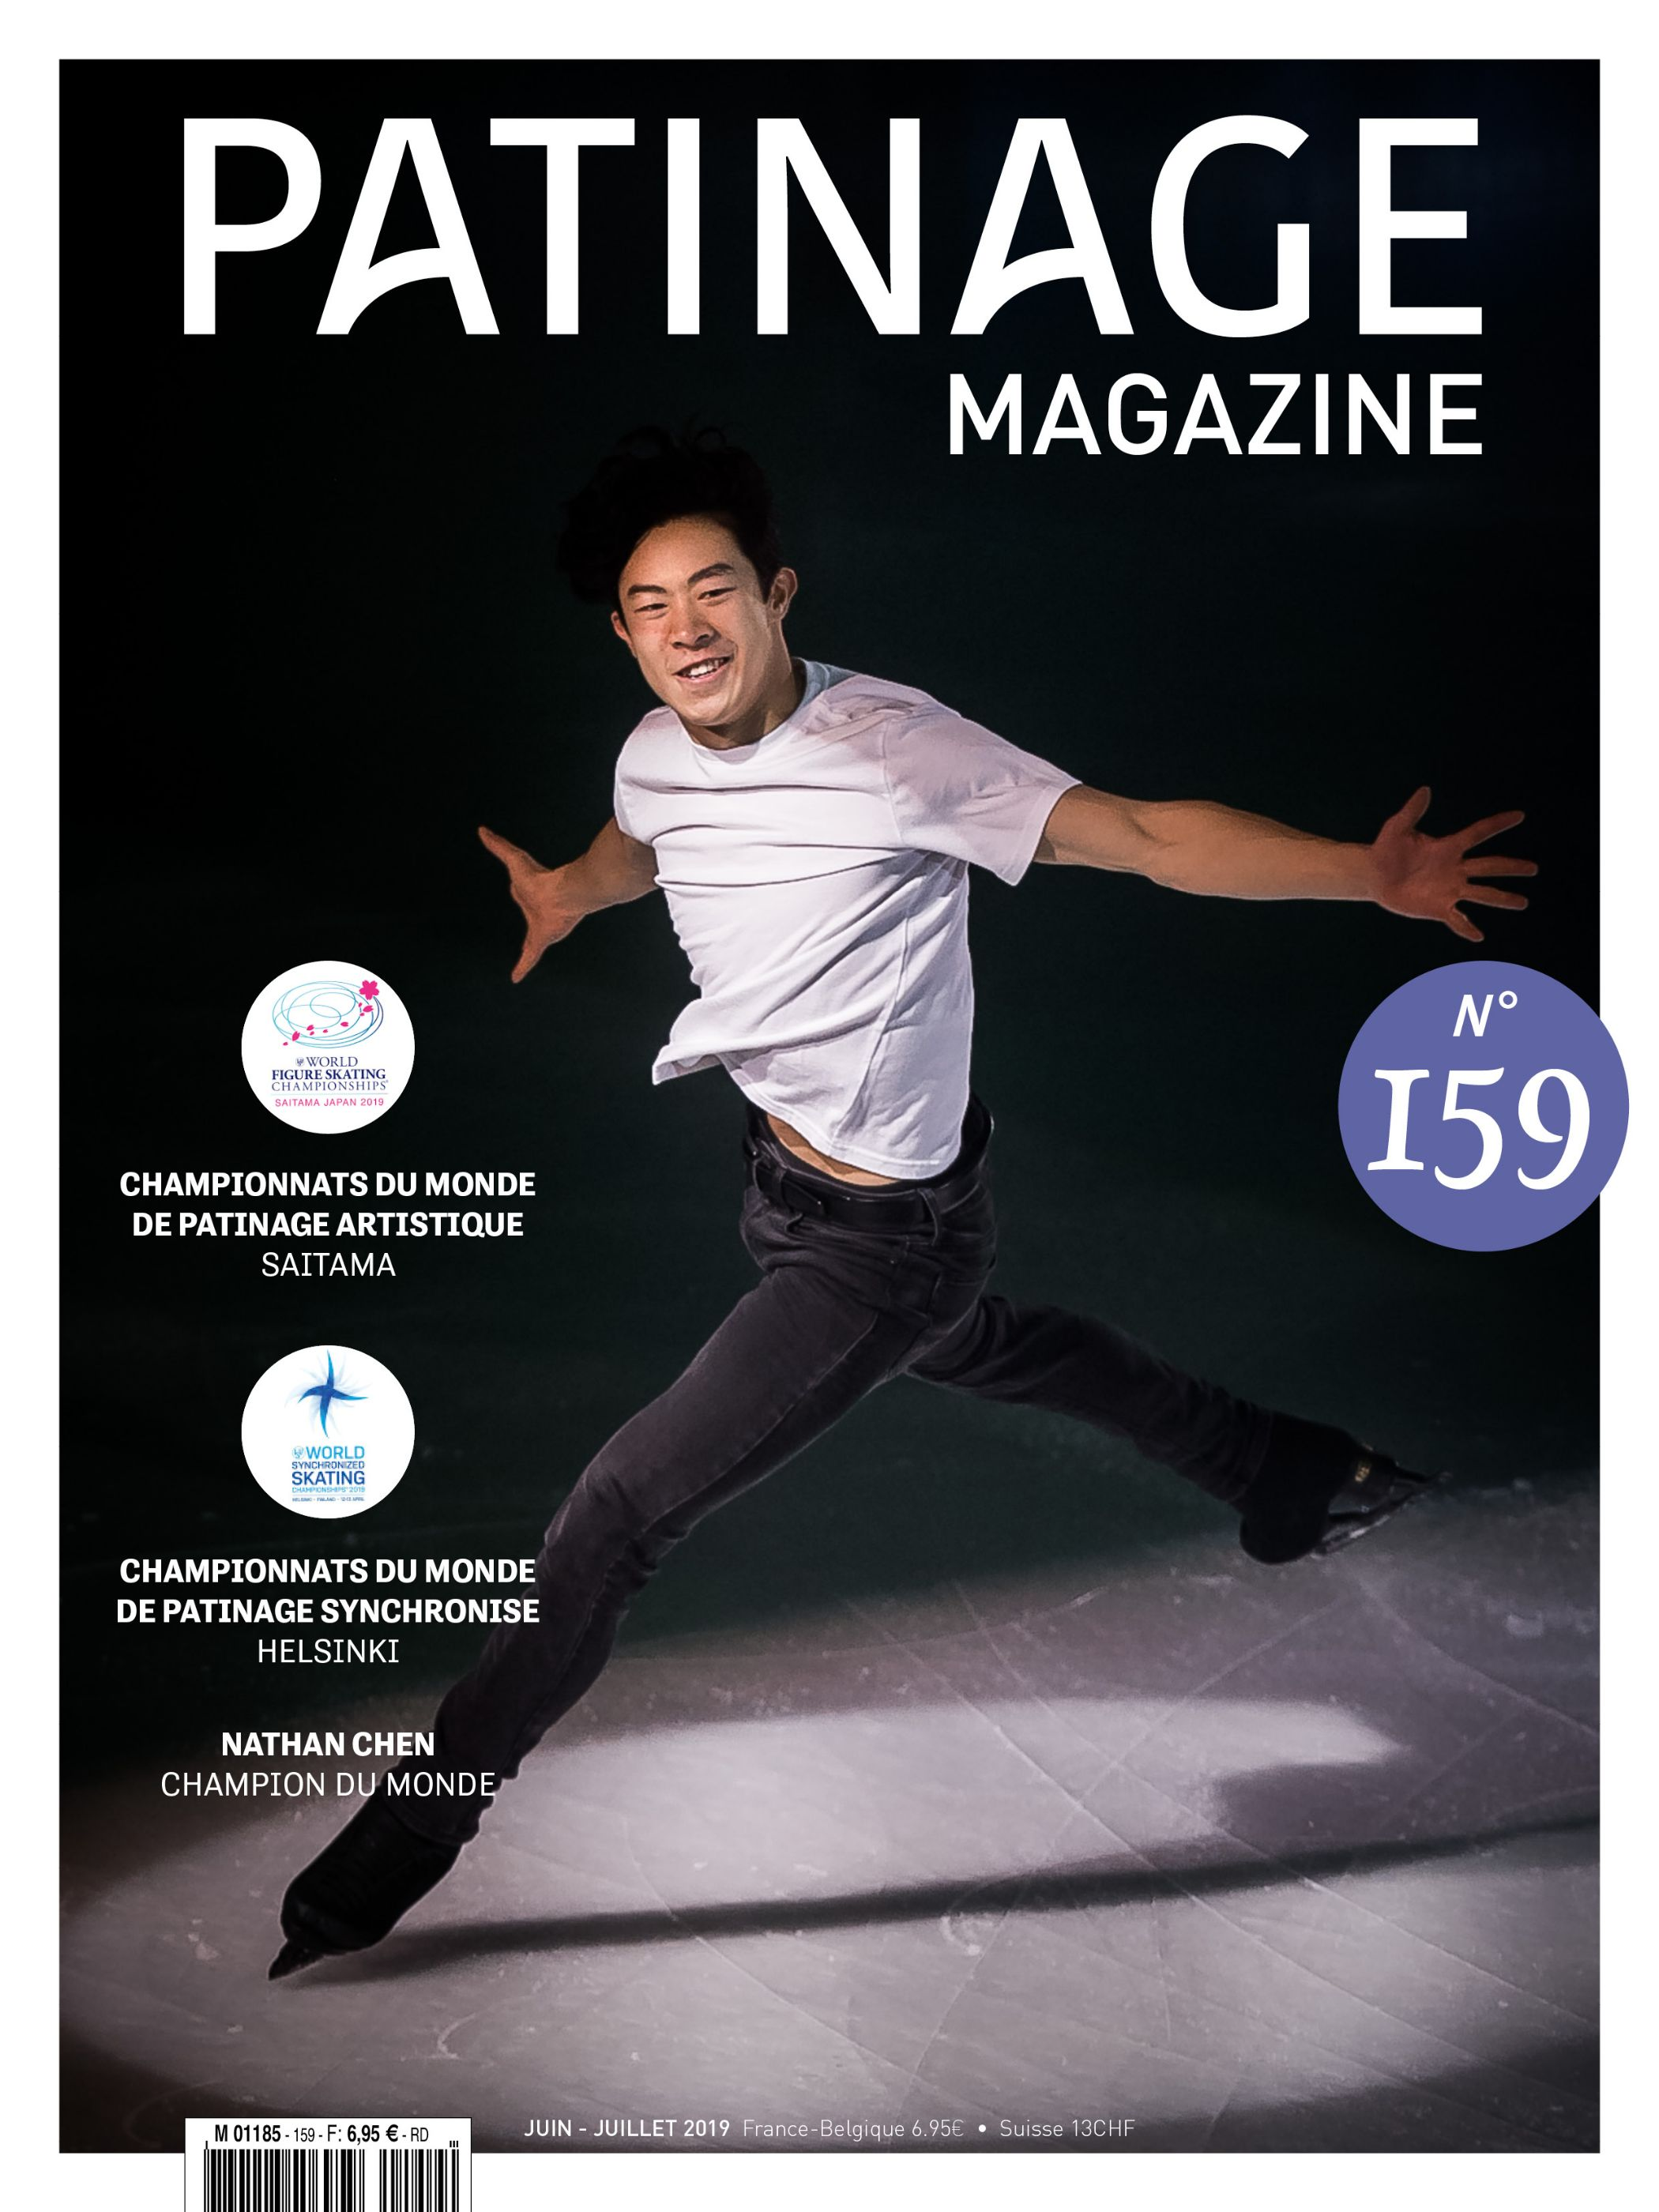 Patinage Magazine 159 est en vente!